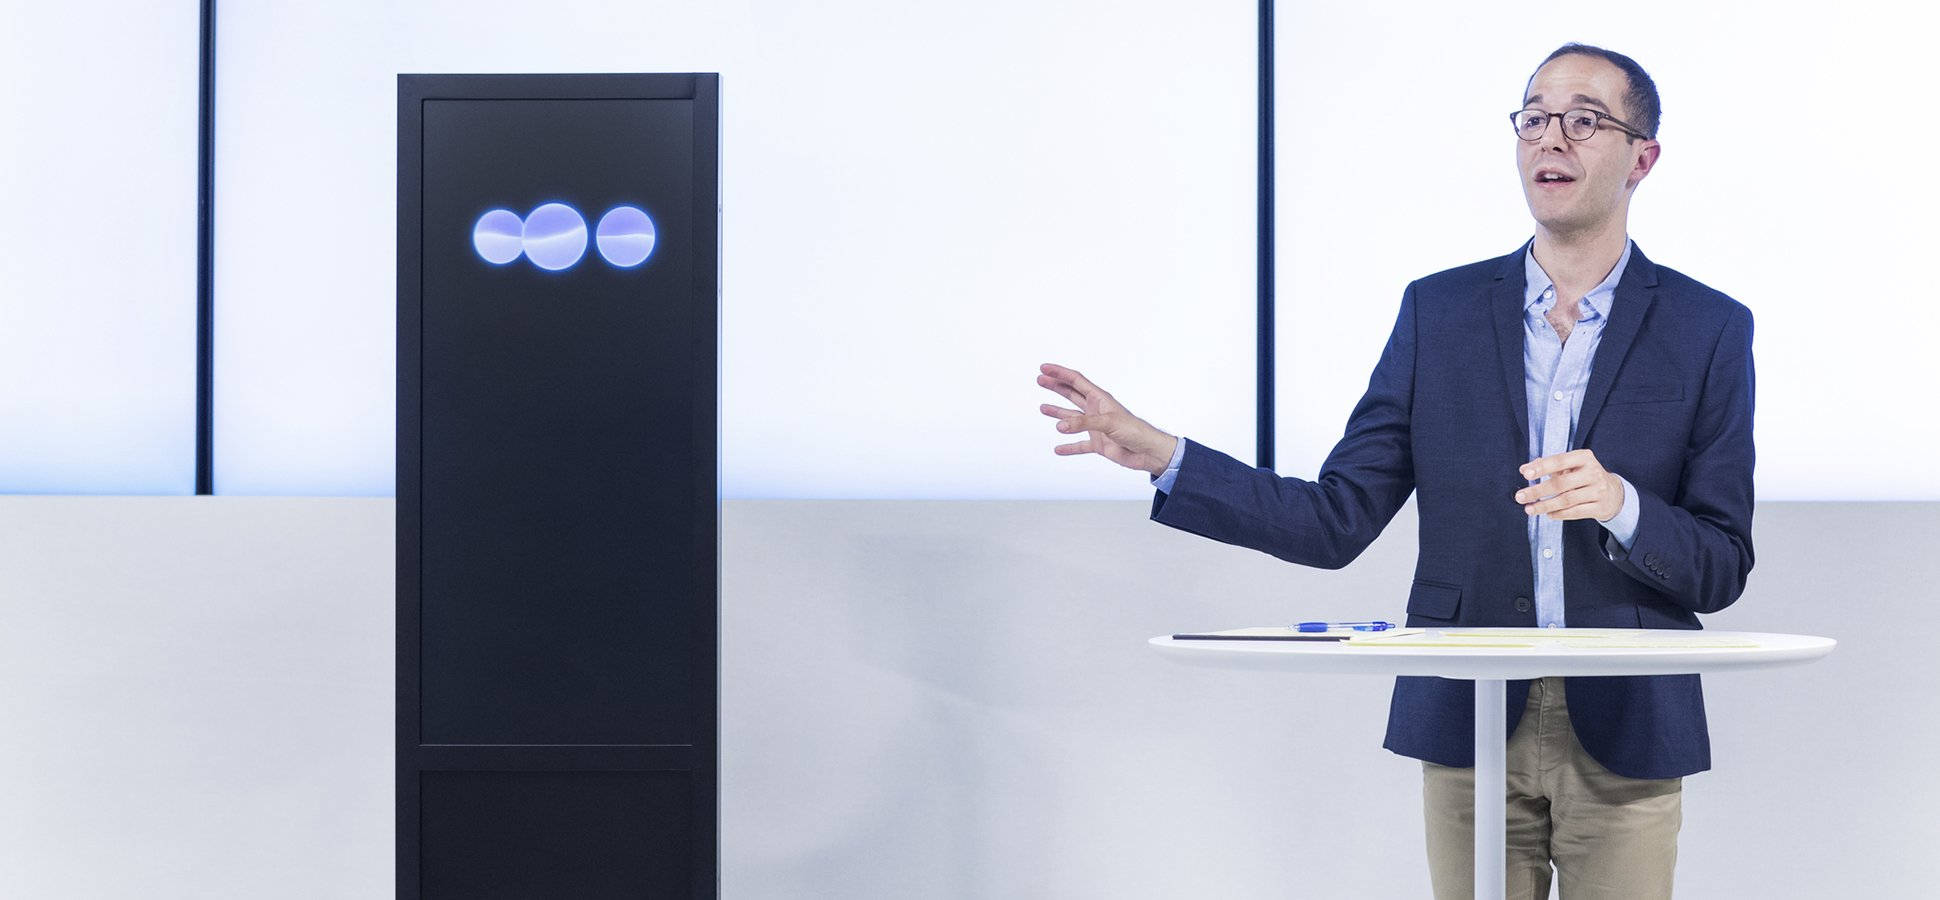 Having Conquered Chess and Jeopardy!, IBM Takes On Humans In Debate